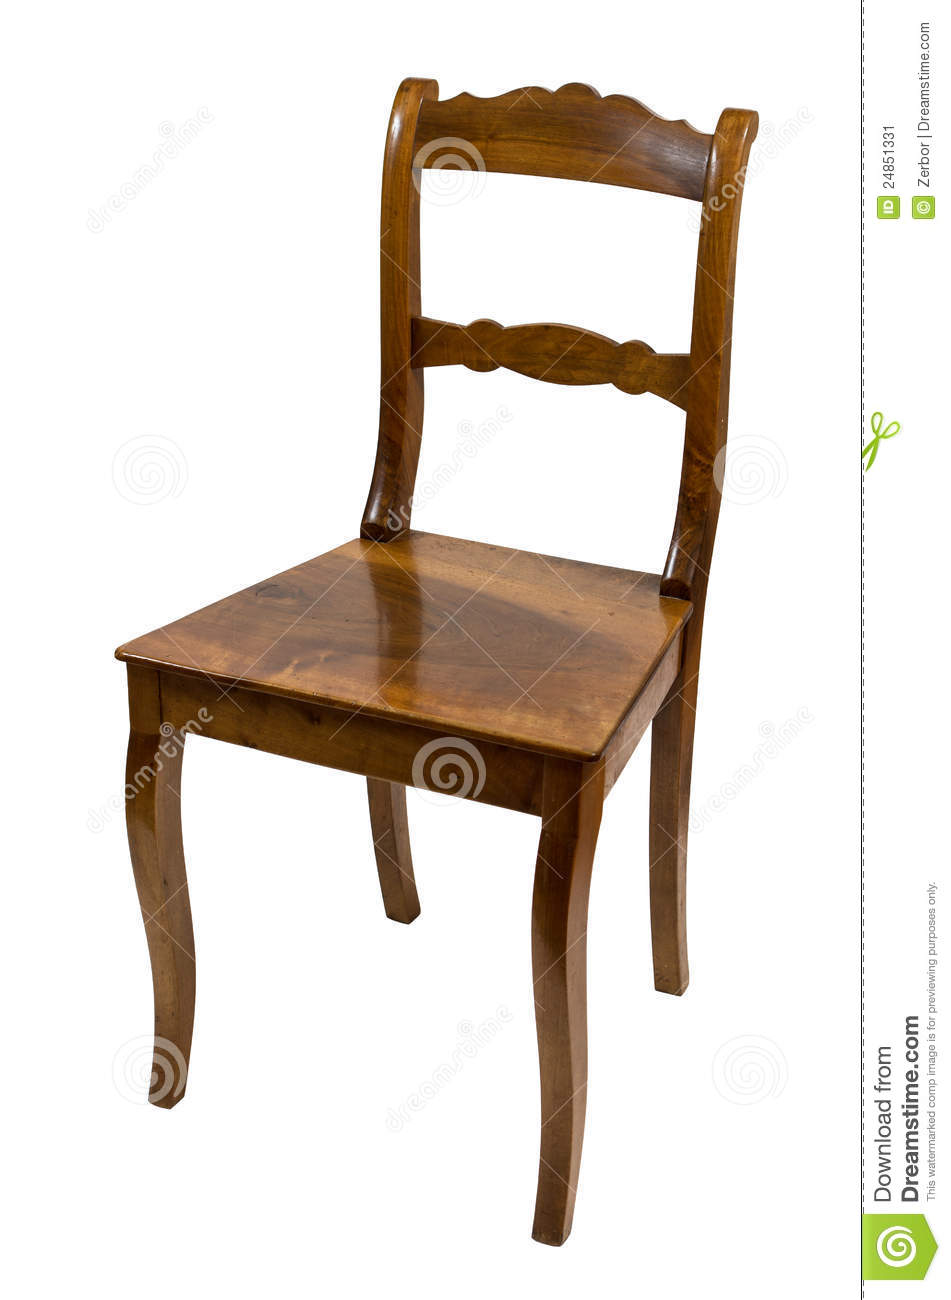 Antique chair 2 stock image image 24851331 - Chair antieke ...